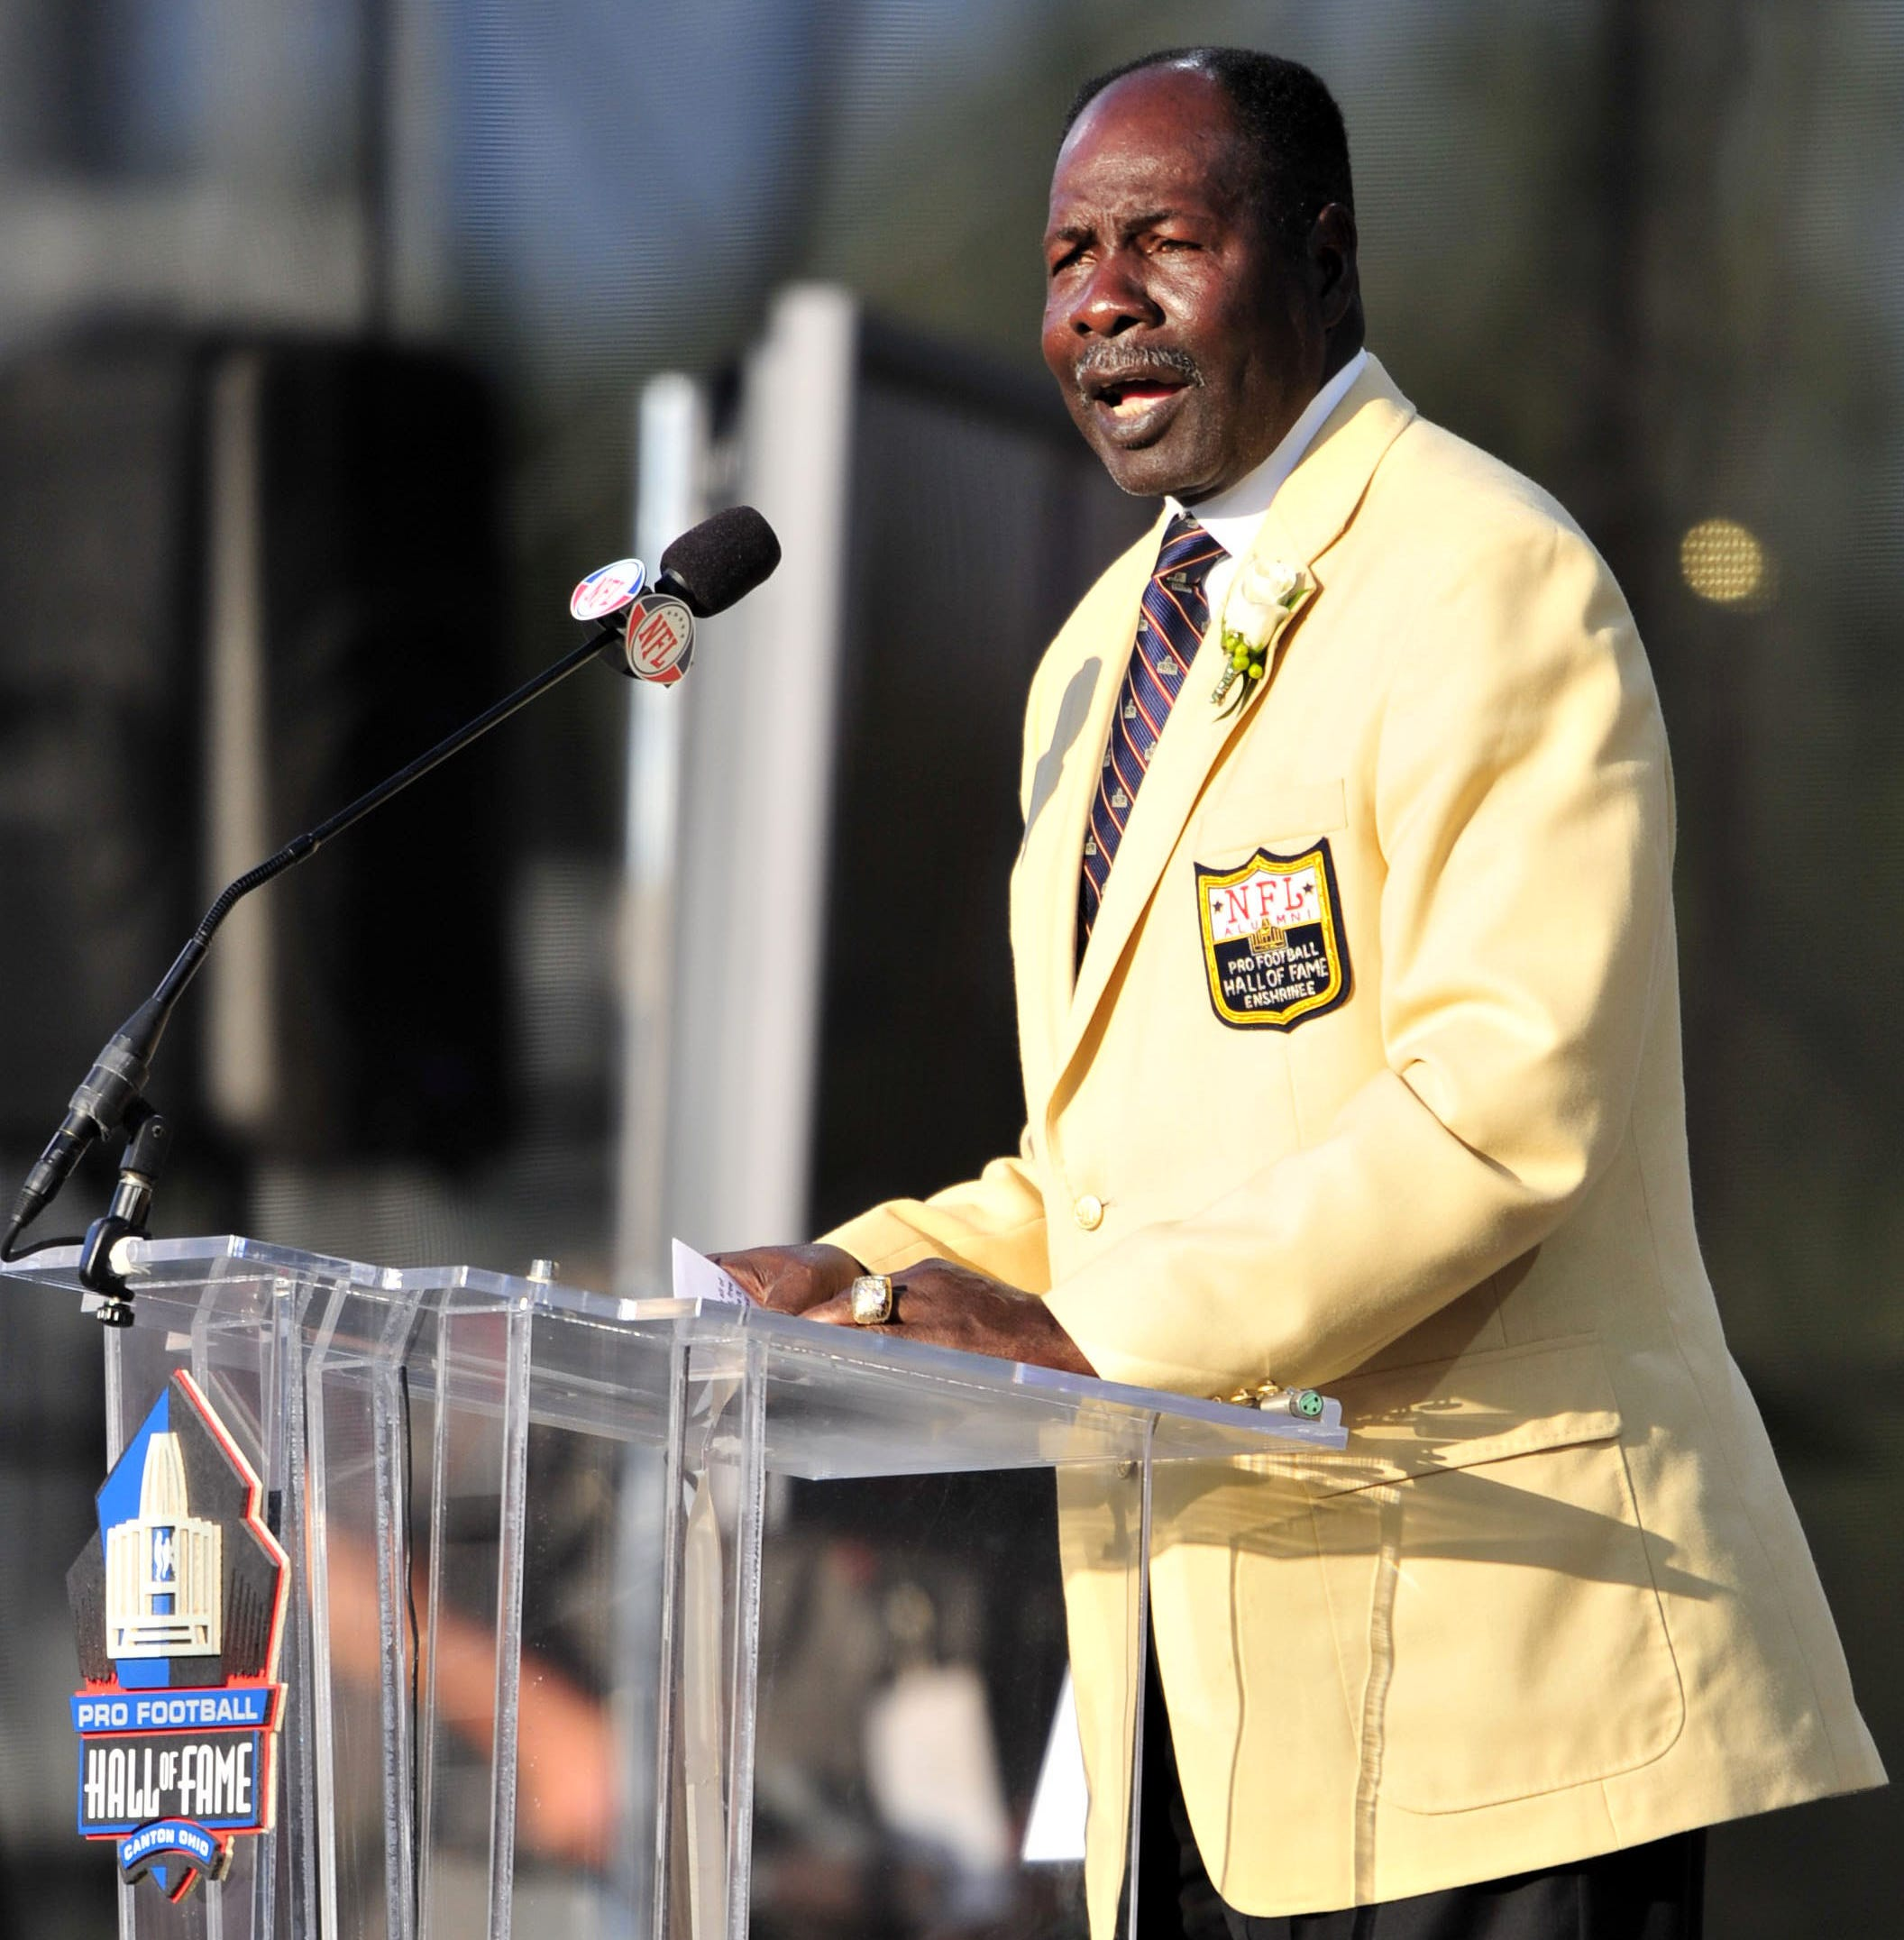 Emmitt Thomas gives induction speech at the Pro Football Hall of Fame enshrinement ceremony in 2008.